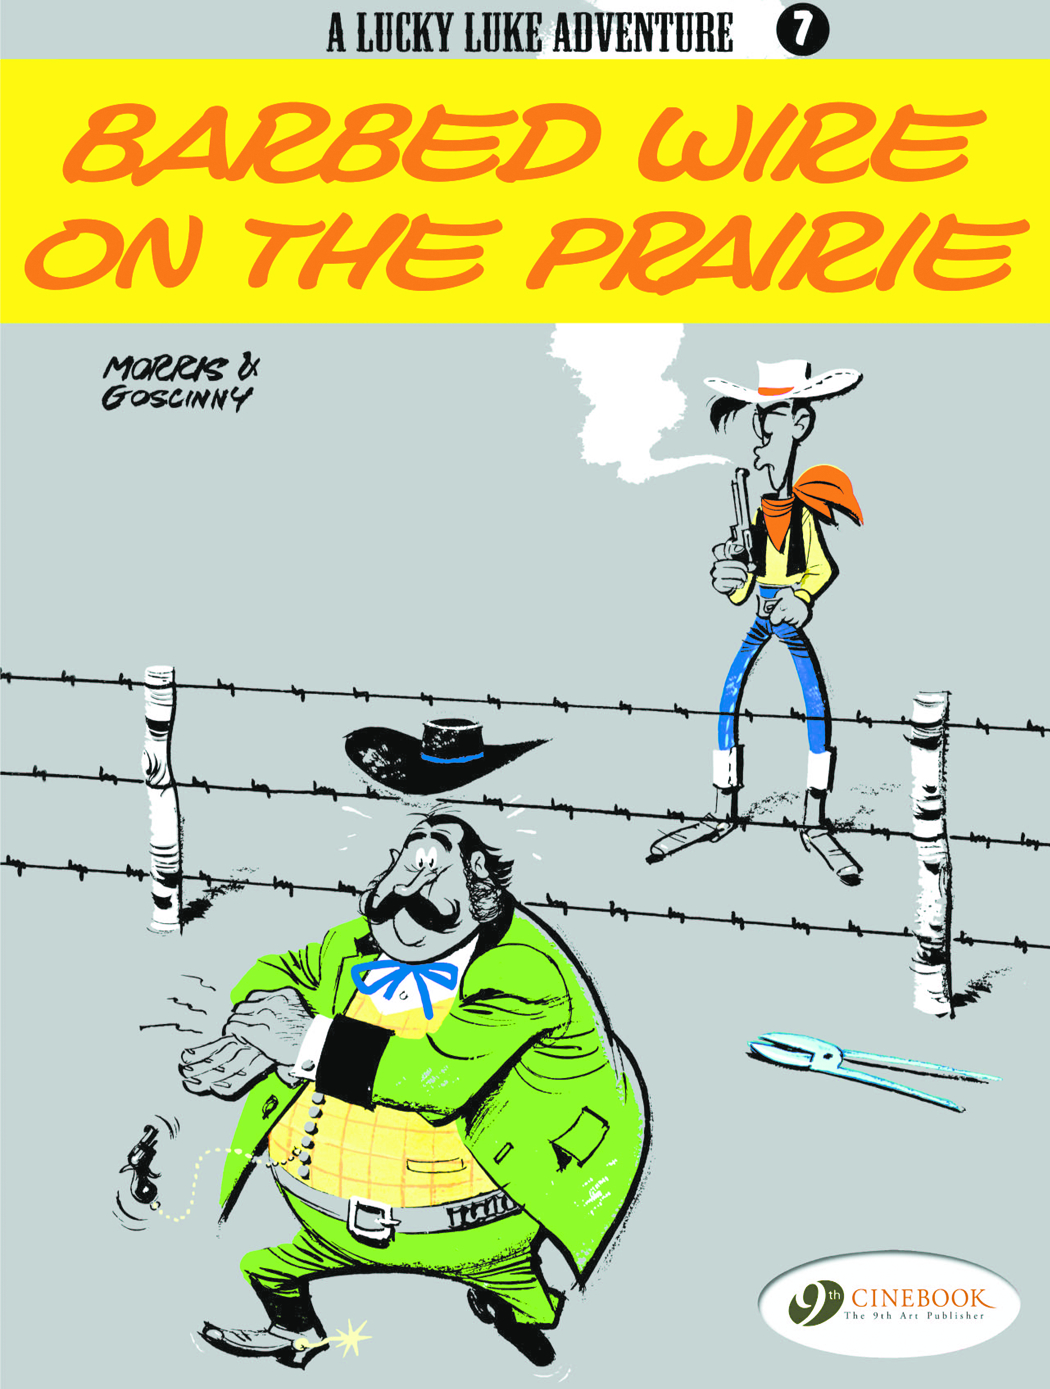 LUCKY LUKE 07 BARBED WIRE ON THE PRAIRIE